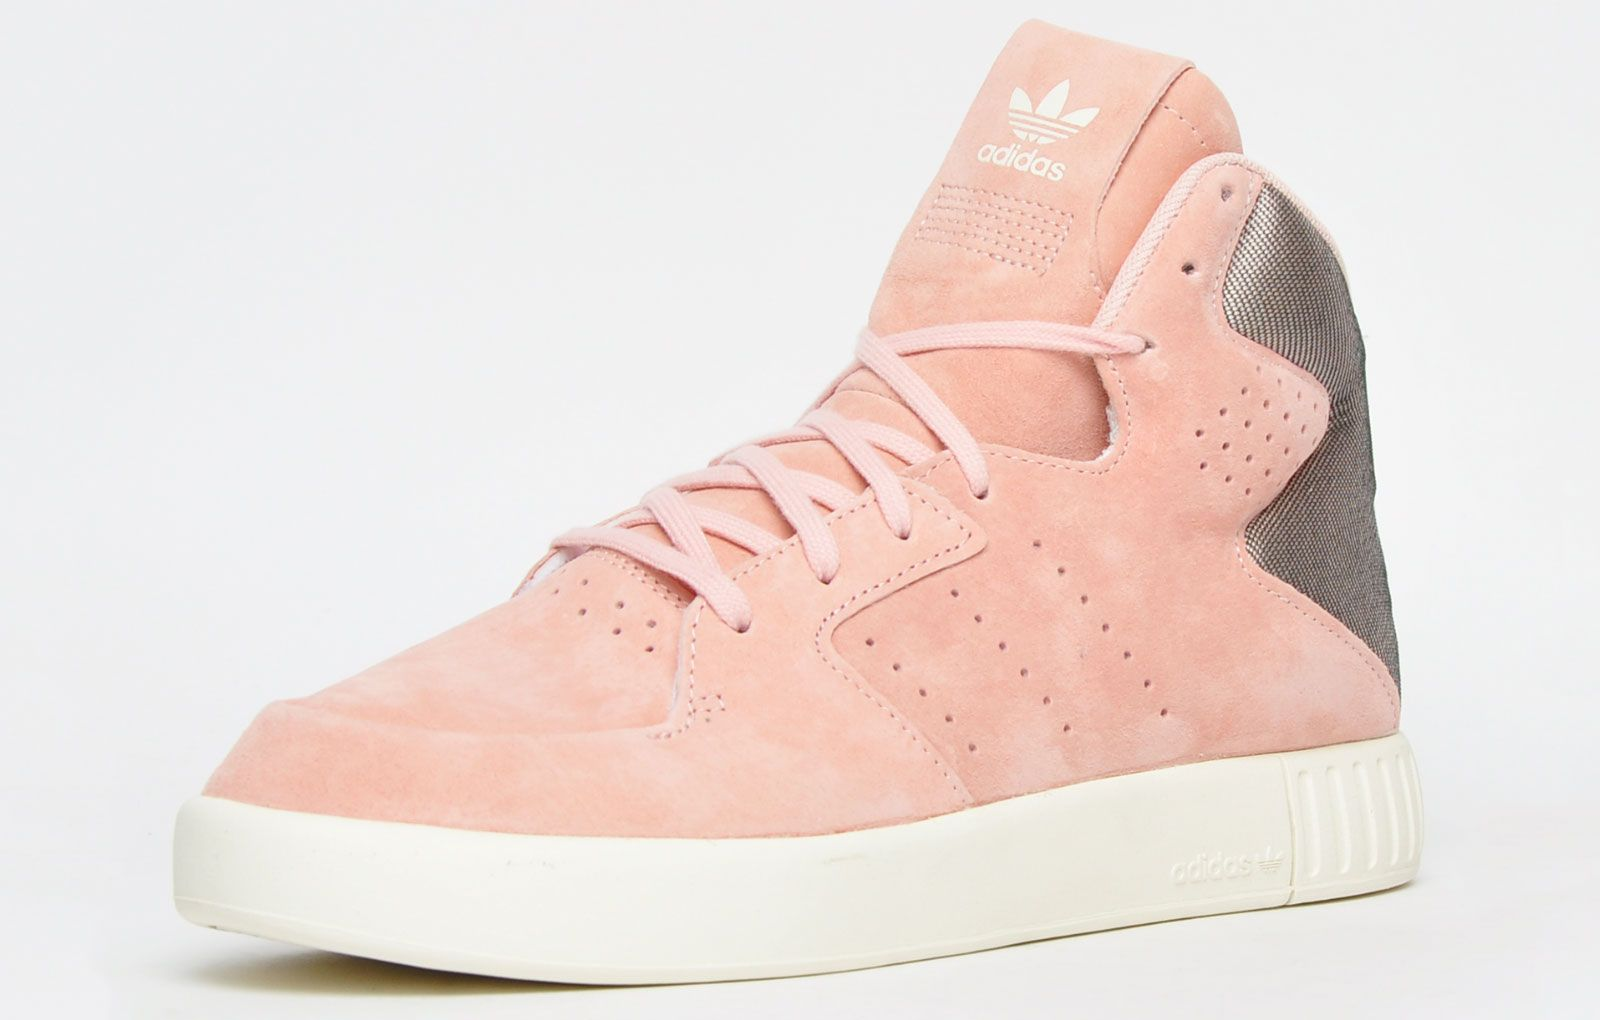 Adidas Originals Tubular Invader 2.0 Womens Girls